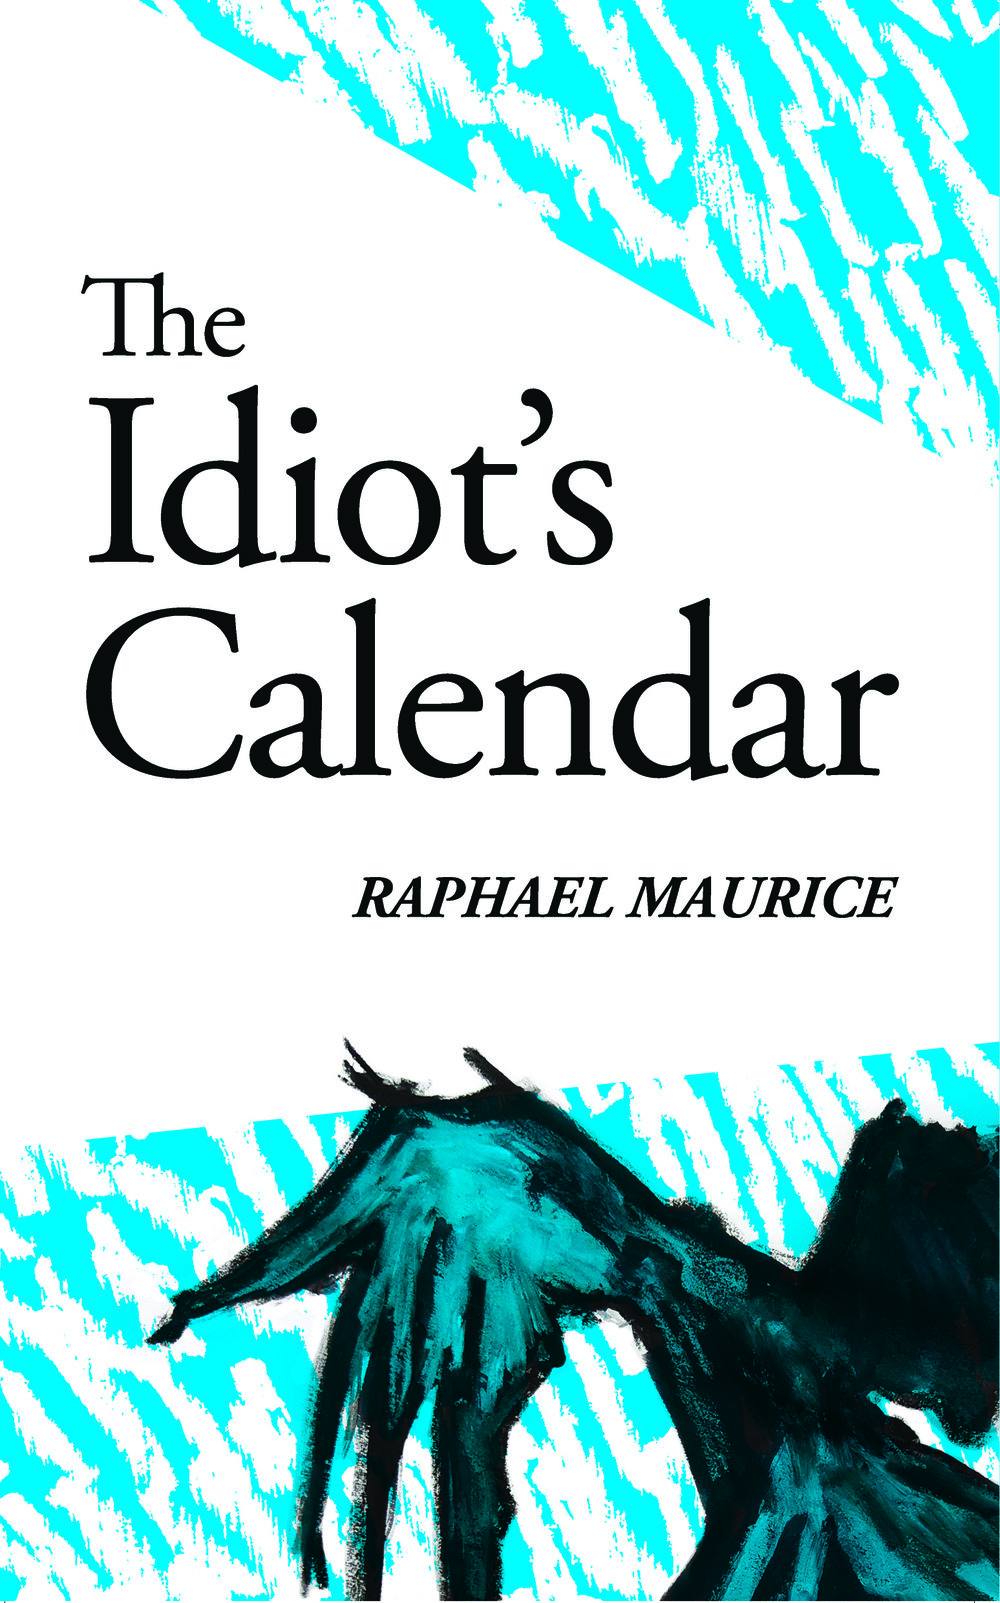 Raphael Maurice, The Idiot's Calendar, front cover, 2-7-18.jpg